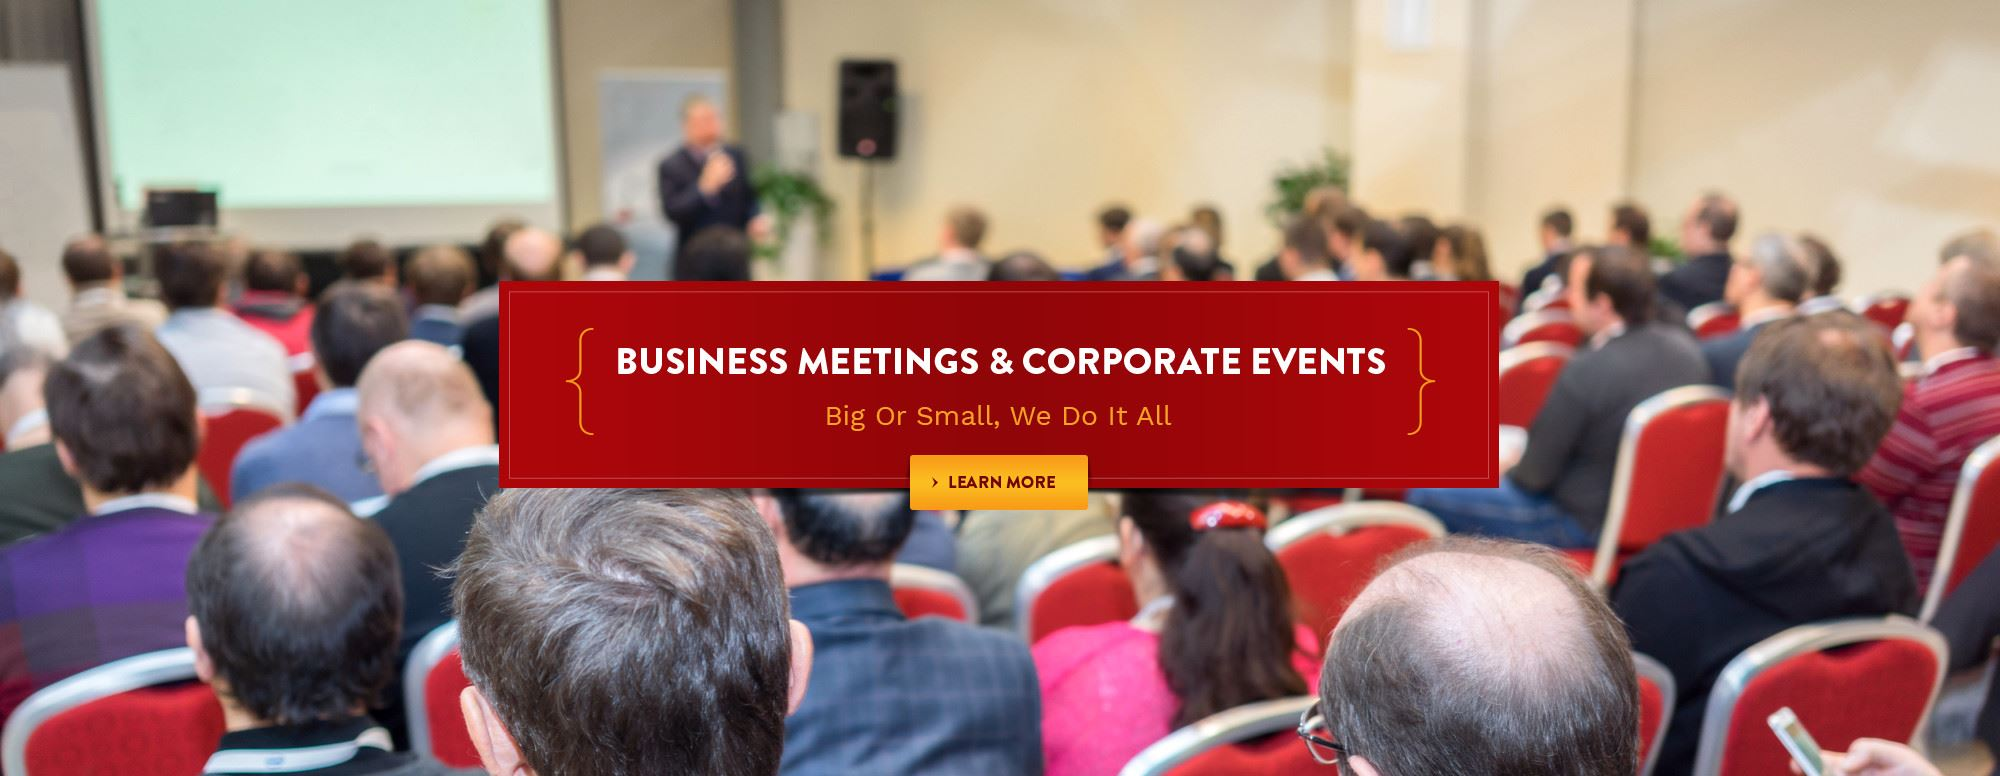 Business Meetings and Corporate Events